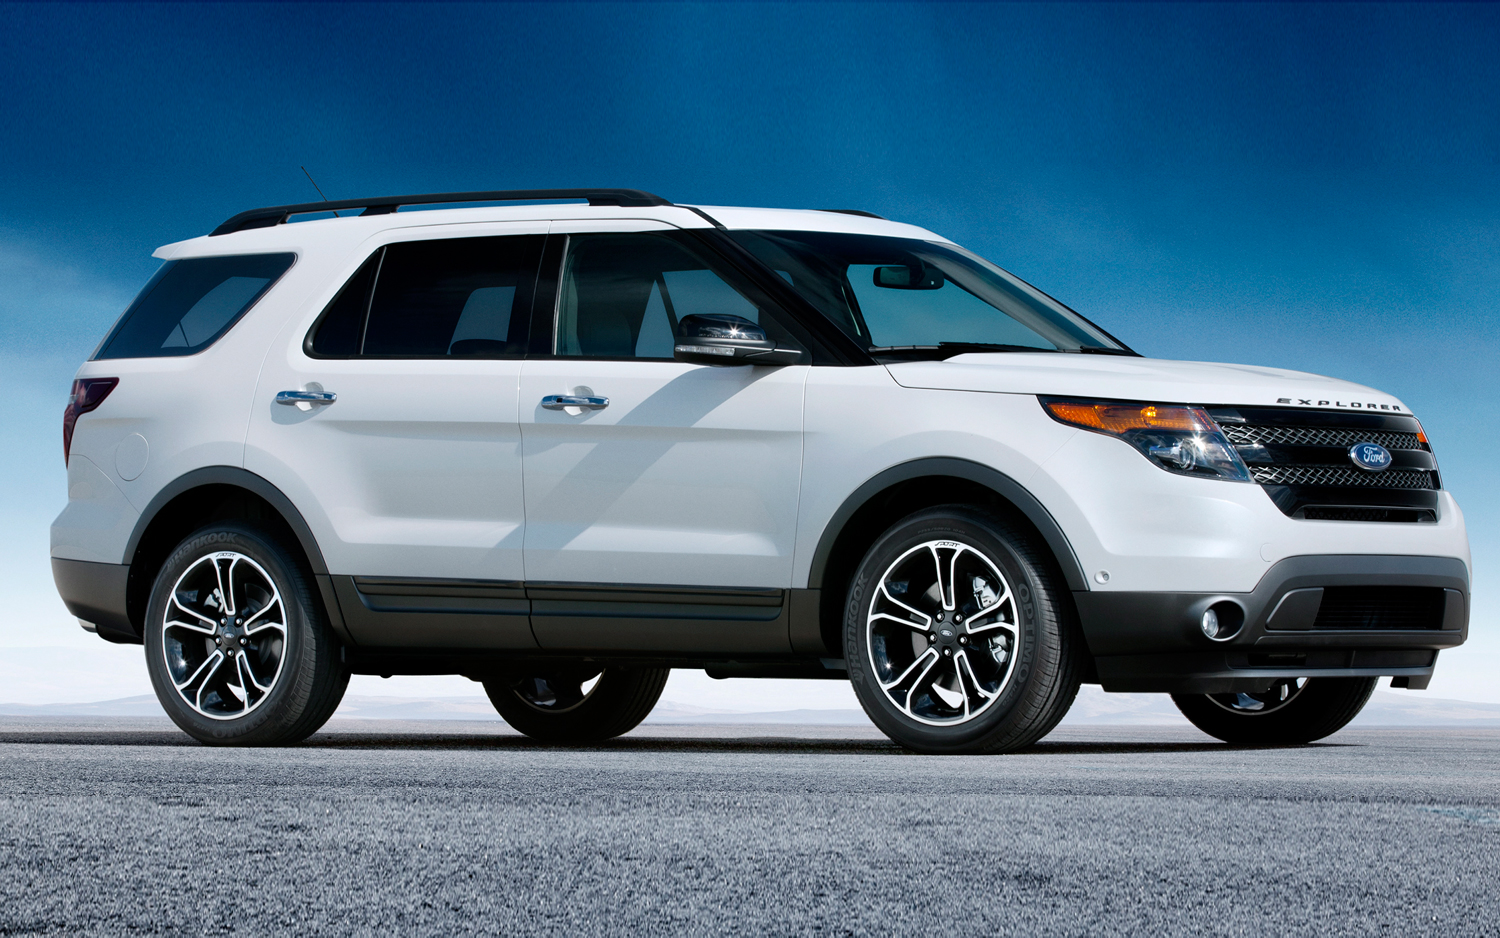 2013-ford-explorer-sport-side.jpg